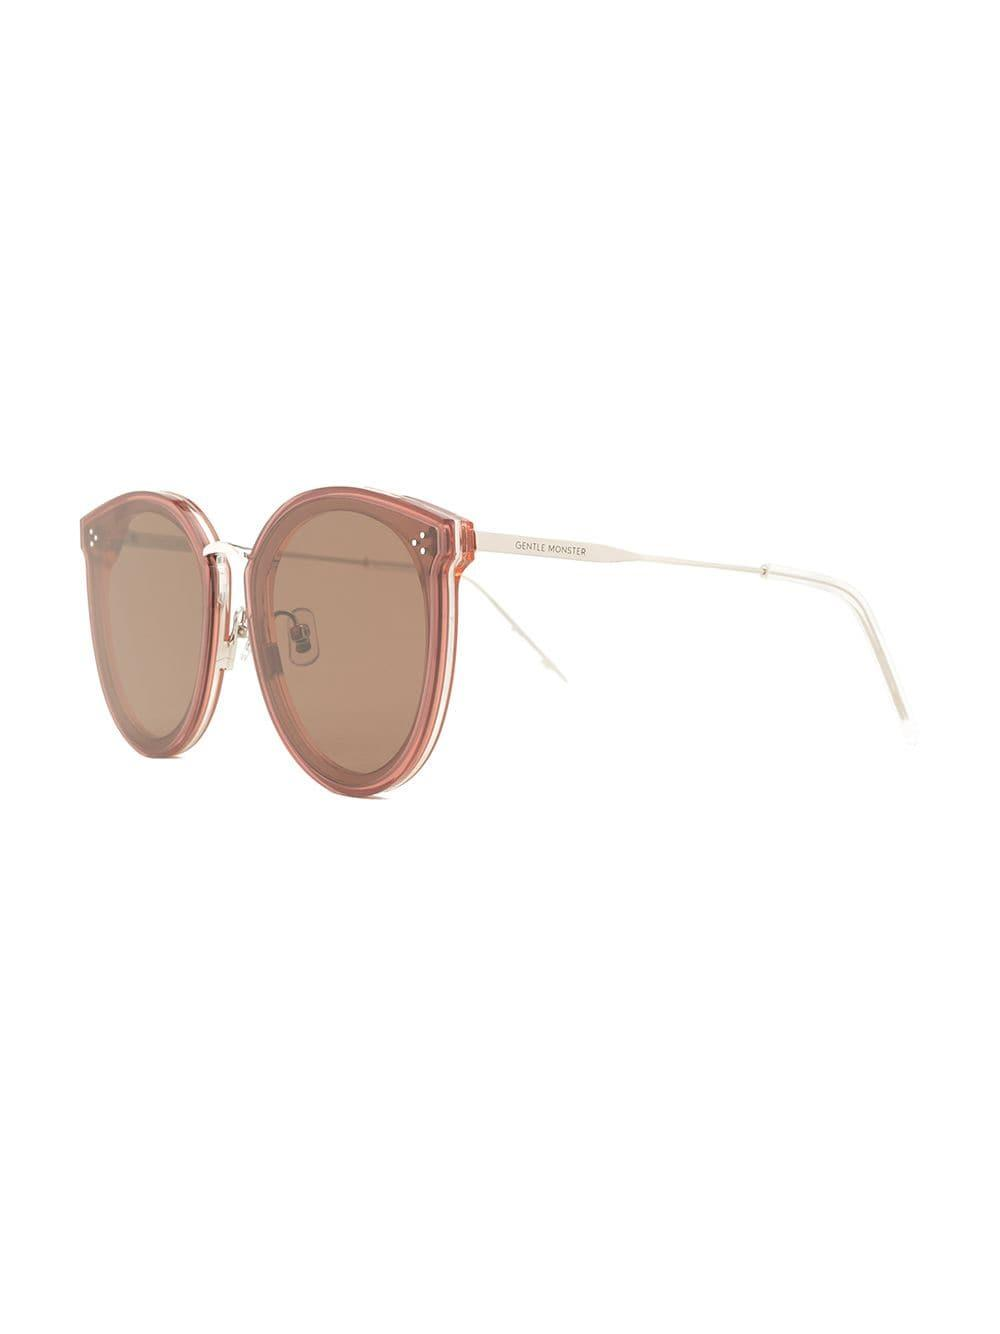 1f0cb5c61a Gentle Monster Paw Paw Sunglasses in Pink - Lyst